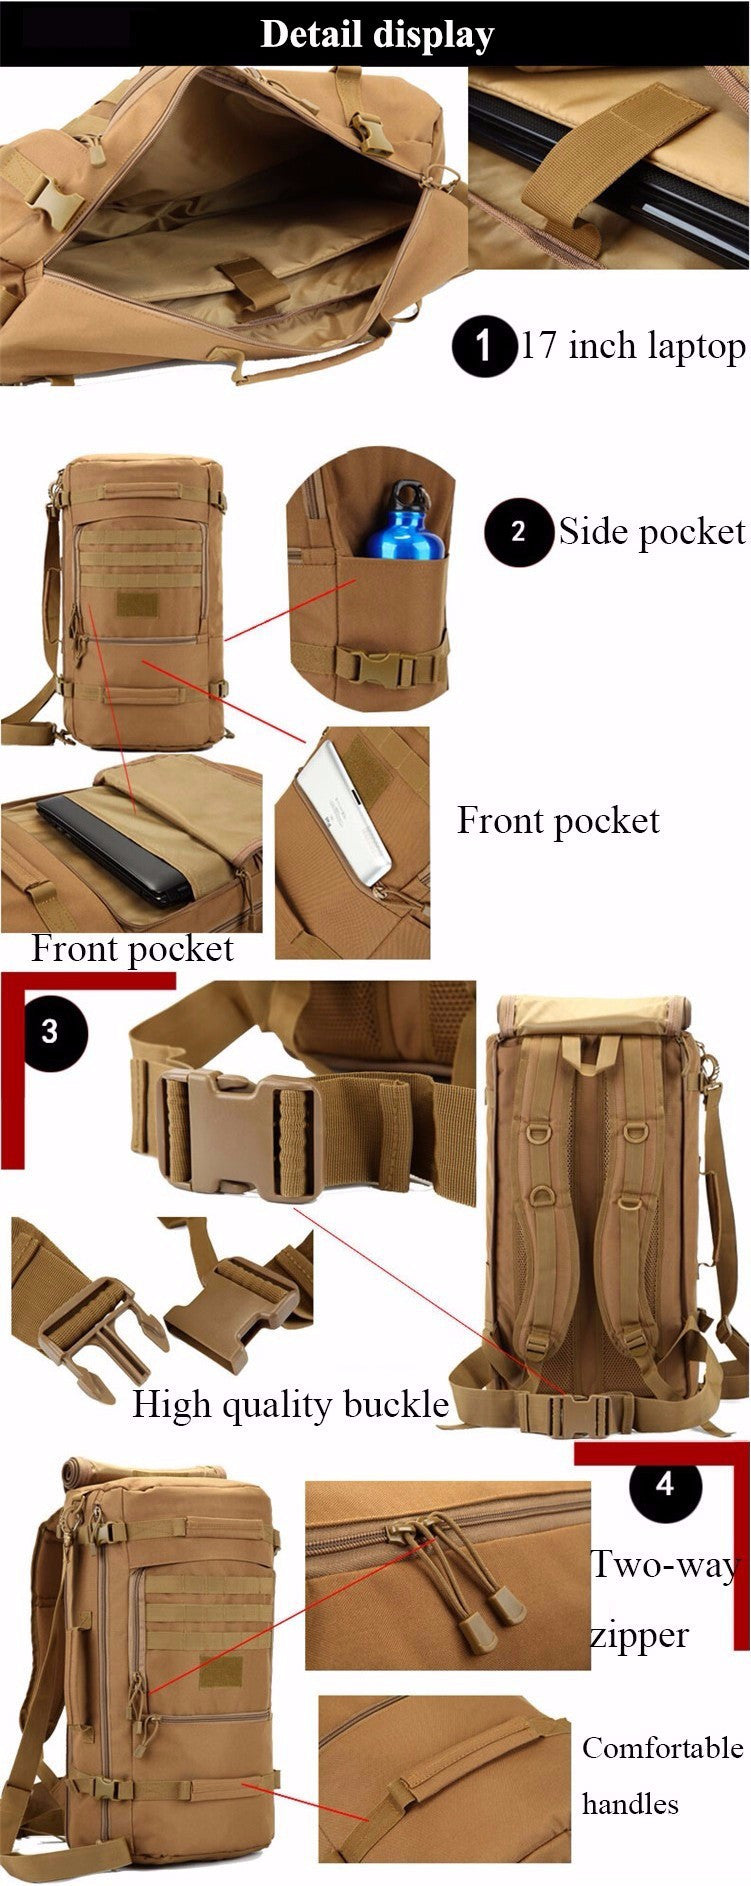 5c062de30 ... Nomad - The Ultimate Carry-on Luggage/Backpack (Multiple Designs) ...